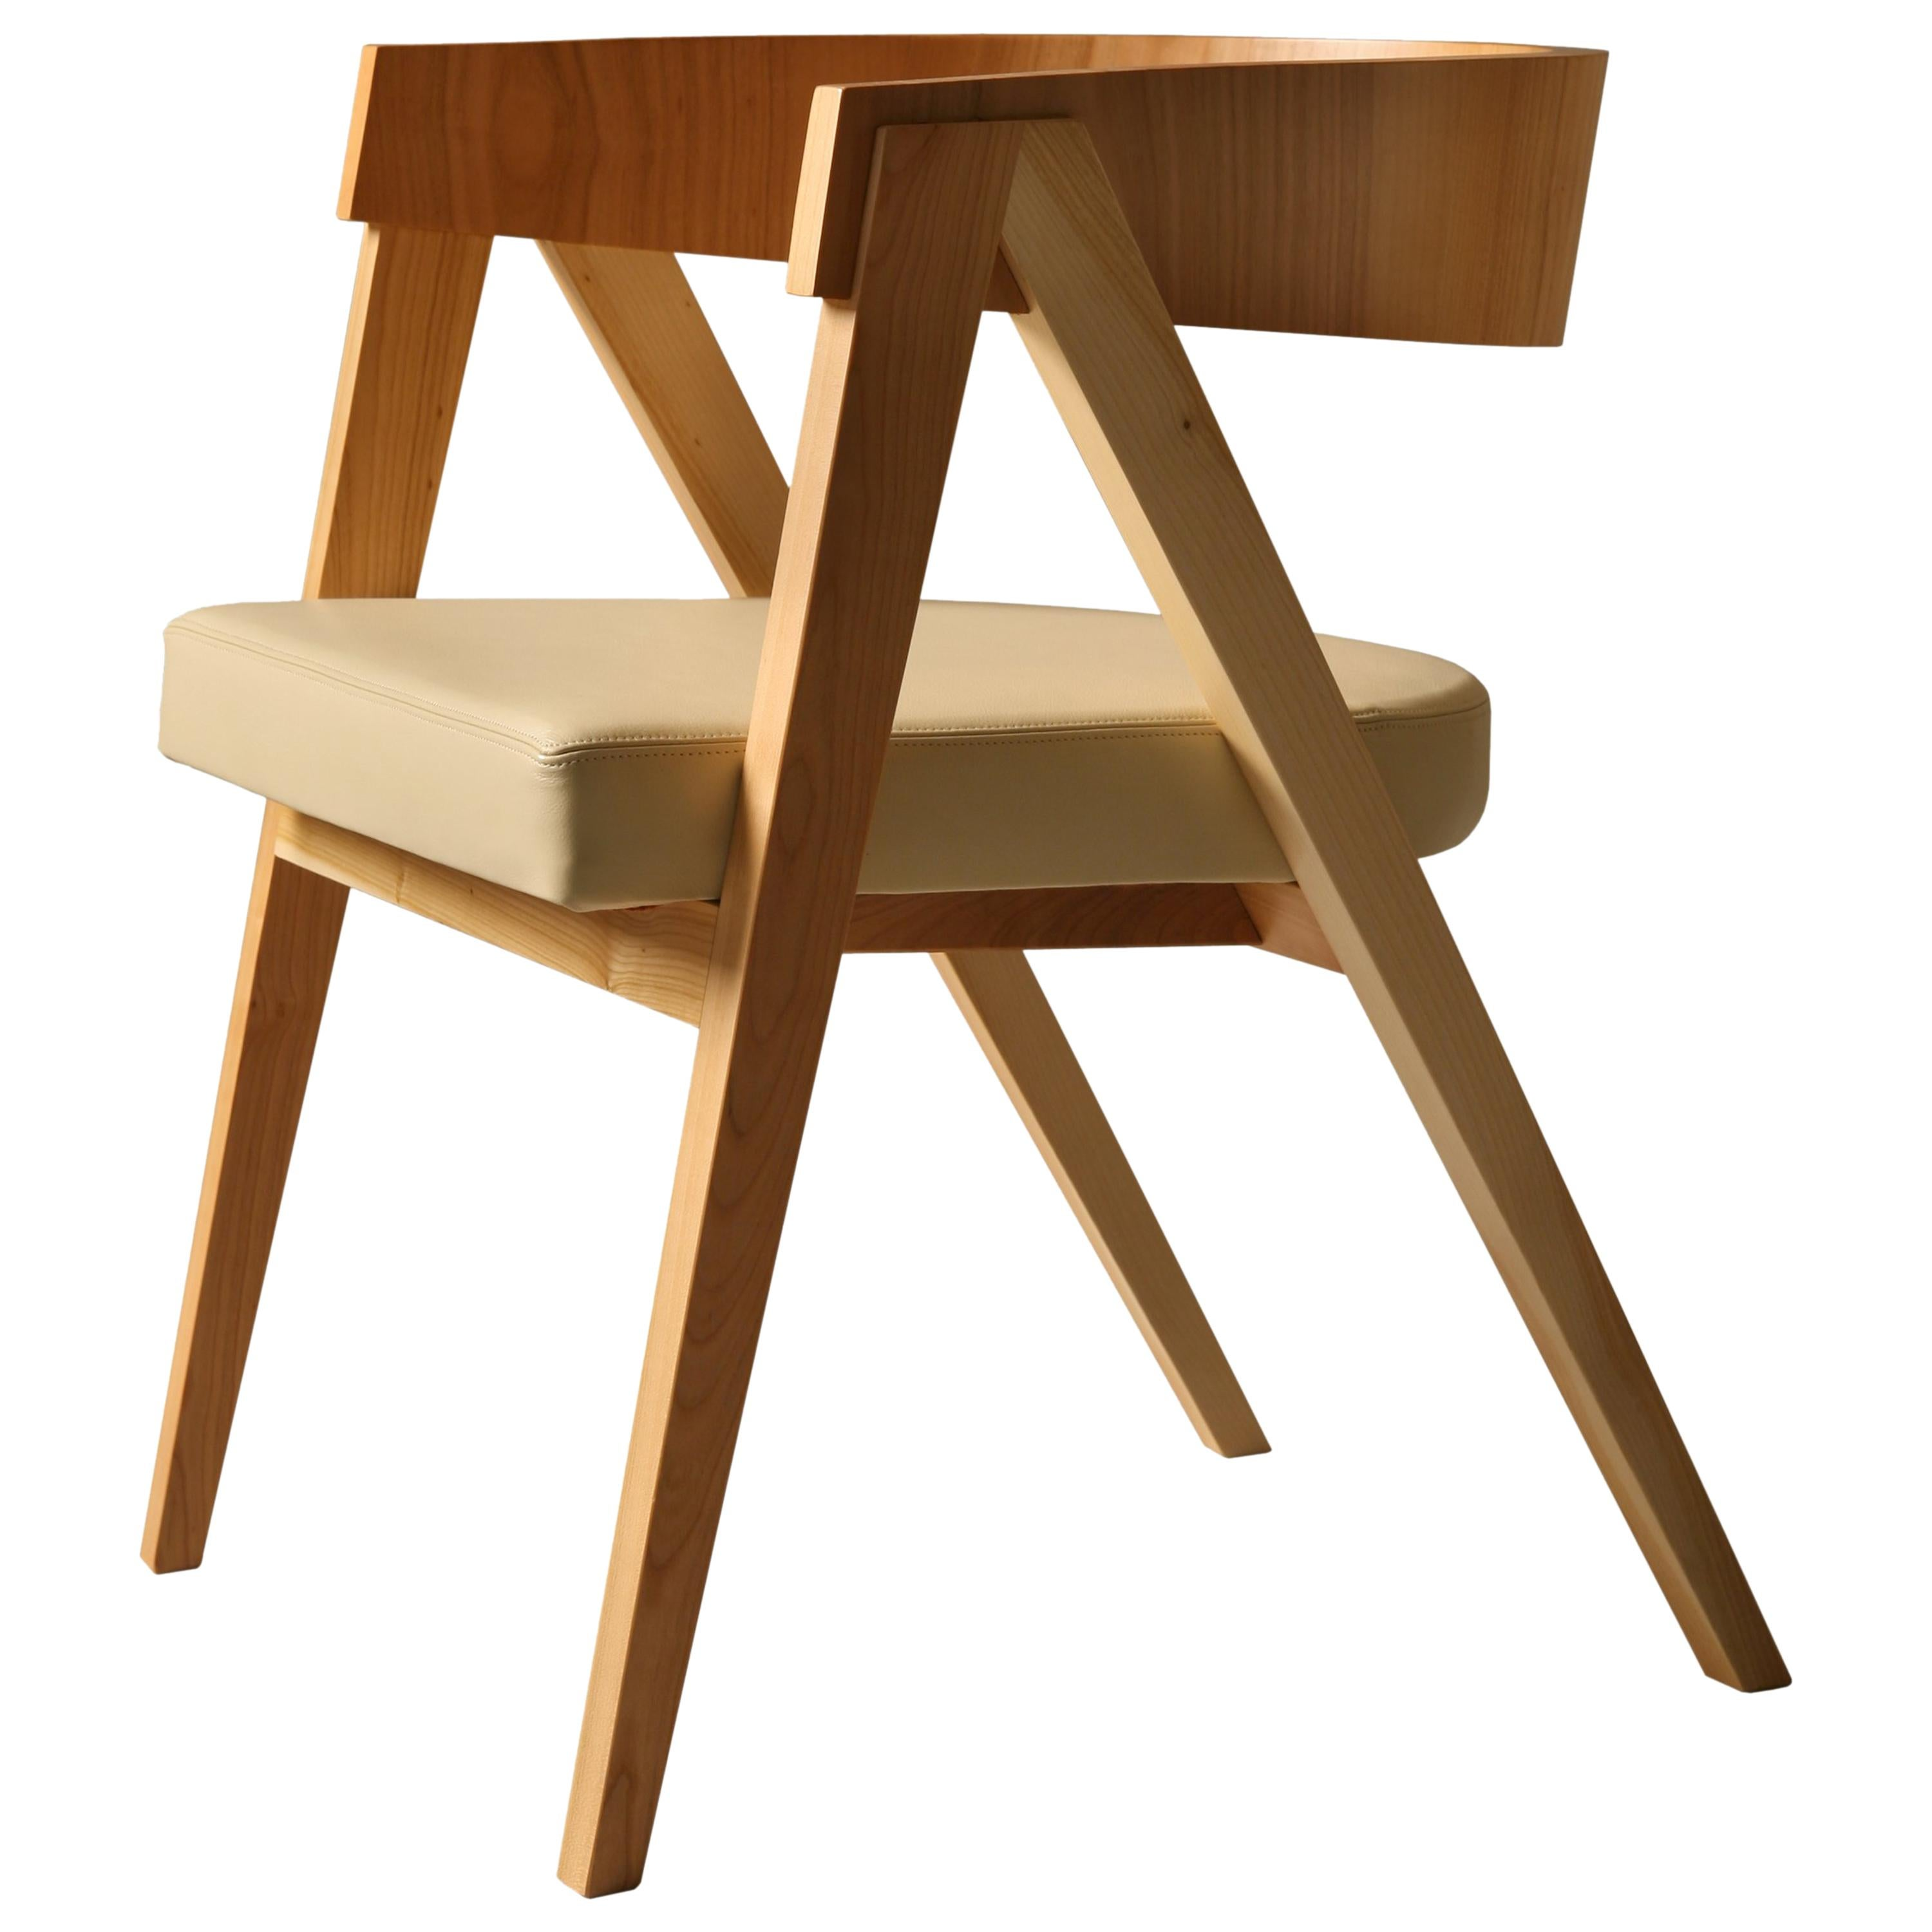 Contemporary Wooden Armchair Made of Maple with Padded Seat and Curved Backrest